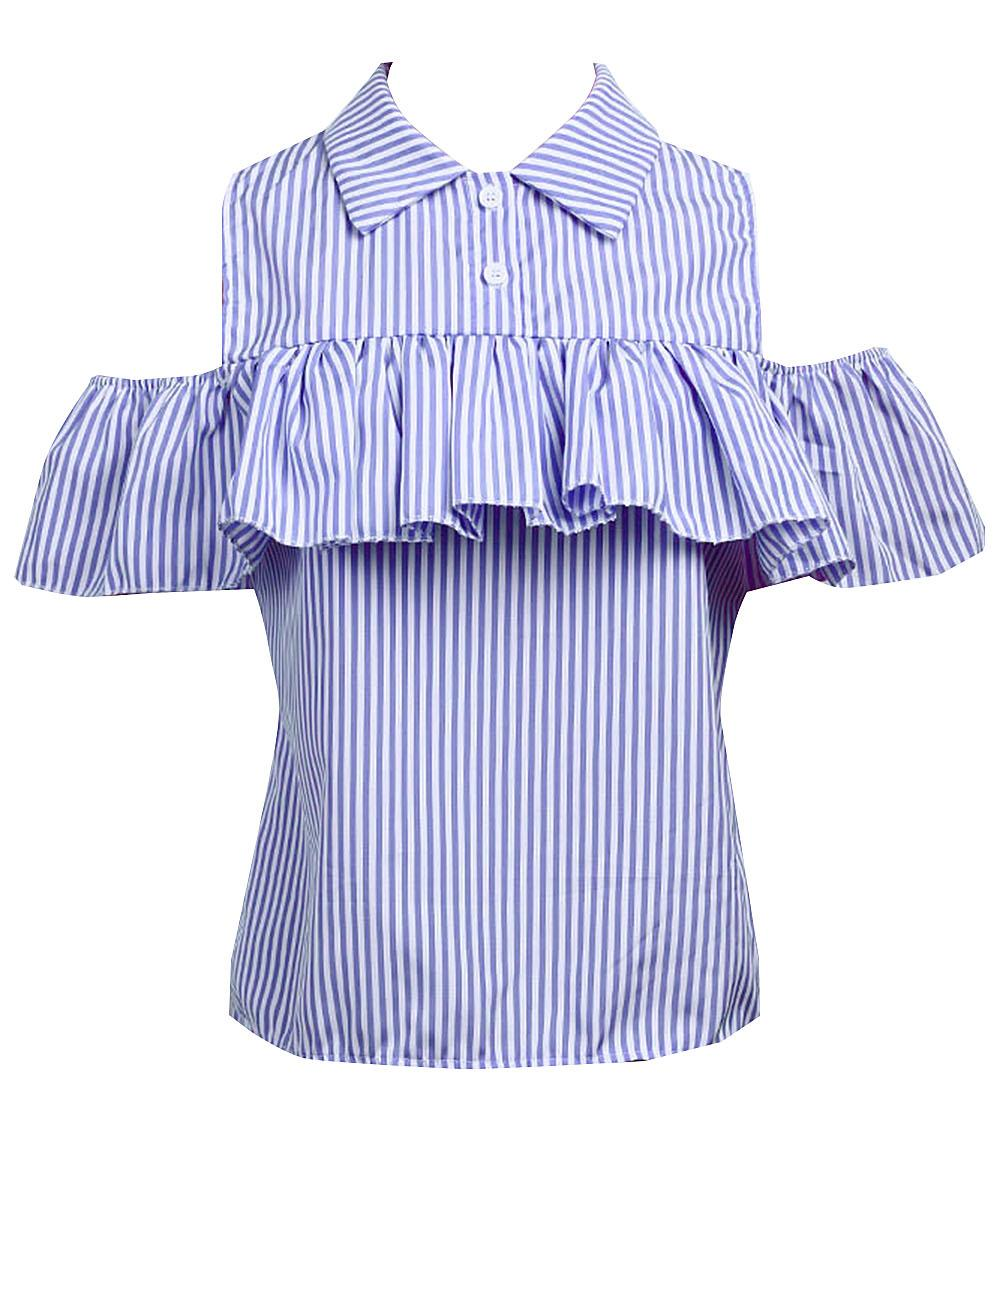 82c9abcf1c6 2019 2017 Trendy Summer Women Loose Ruffles Off The Shoulder Plaid Striped  Blue Pink Shirts Top Casual Blouses Hot Sale From Wonderful9